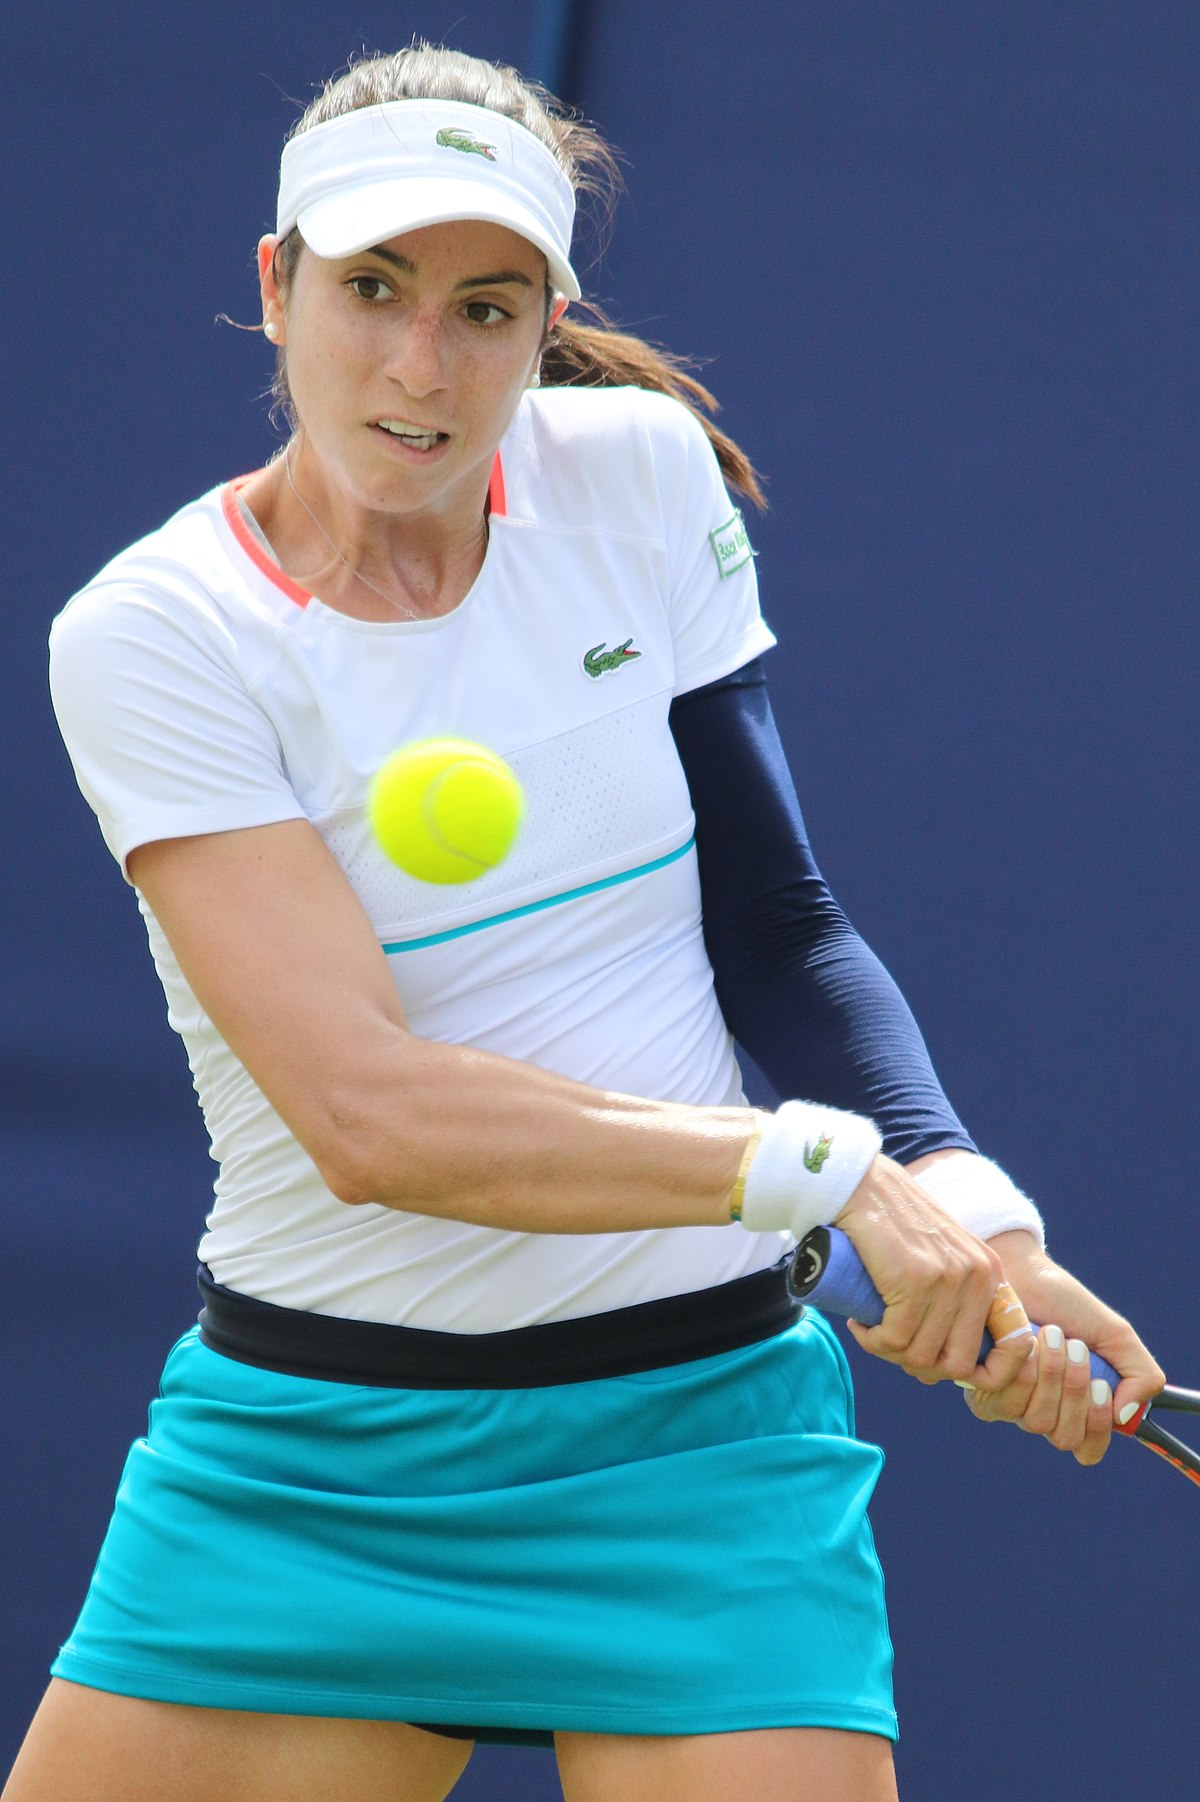 Main article: List of female tennis players